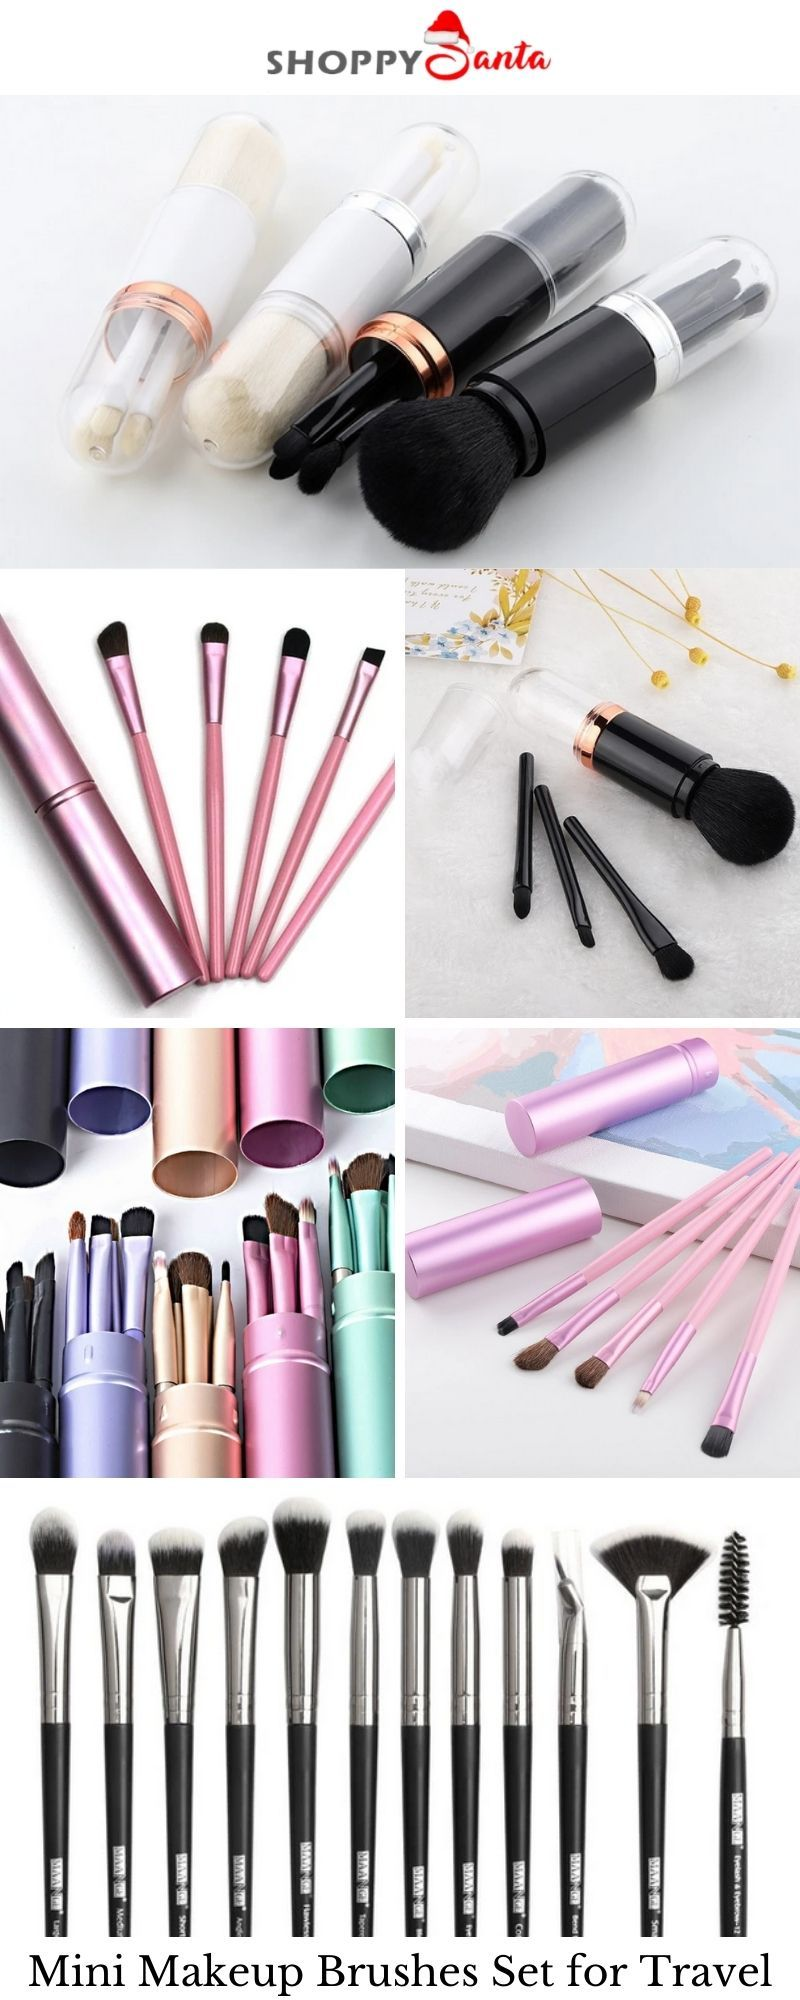 Women love Makeup! Buy and gift to your loved ones. Absolutely Free of cost! Buy Mini Makeup Brushes Set for Travel. Don't miss the opportunity! Get the best one within your range. Click here:- shoppysanta.com #shoppysanta #makeupbrushesset #portablemakeupbruses #makeuptools